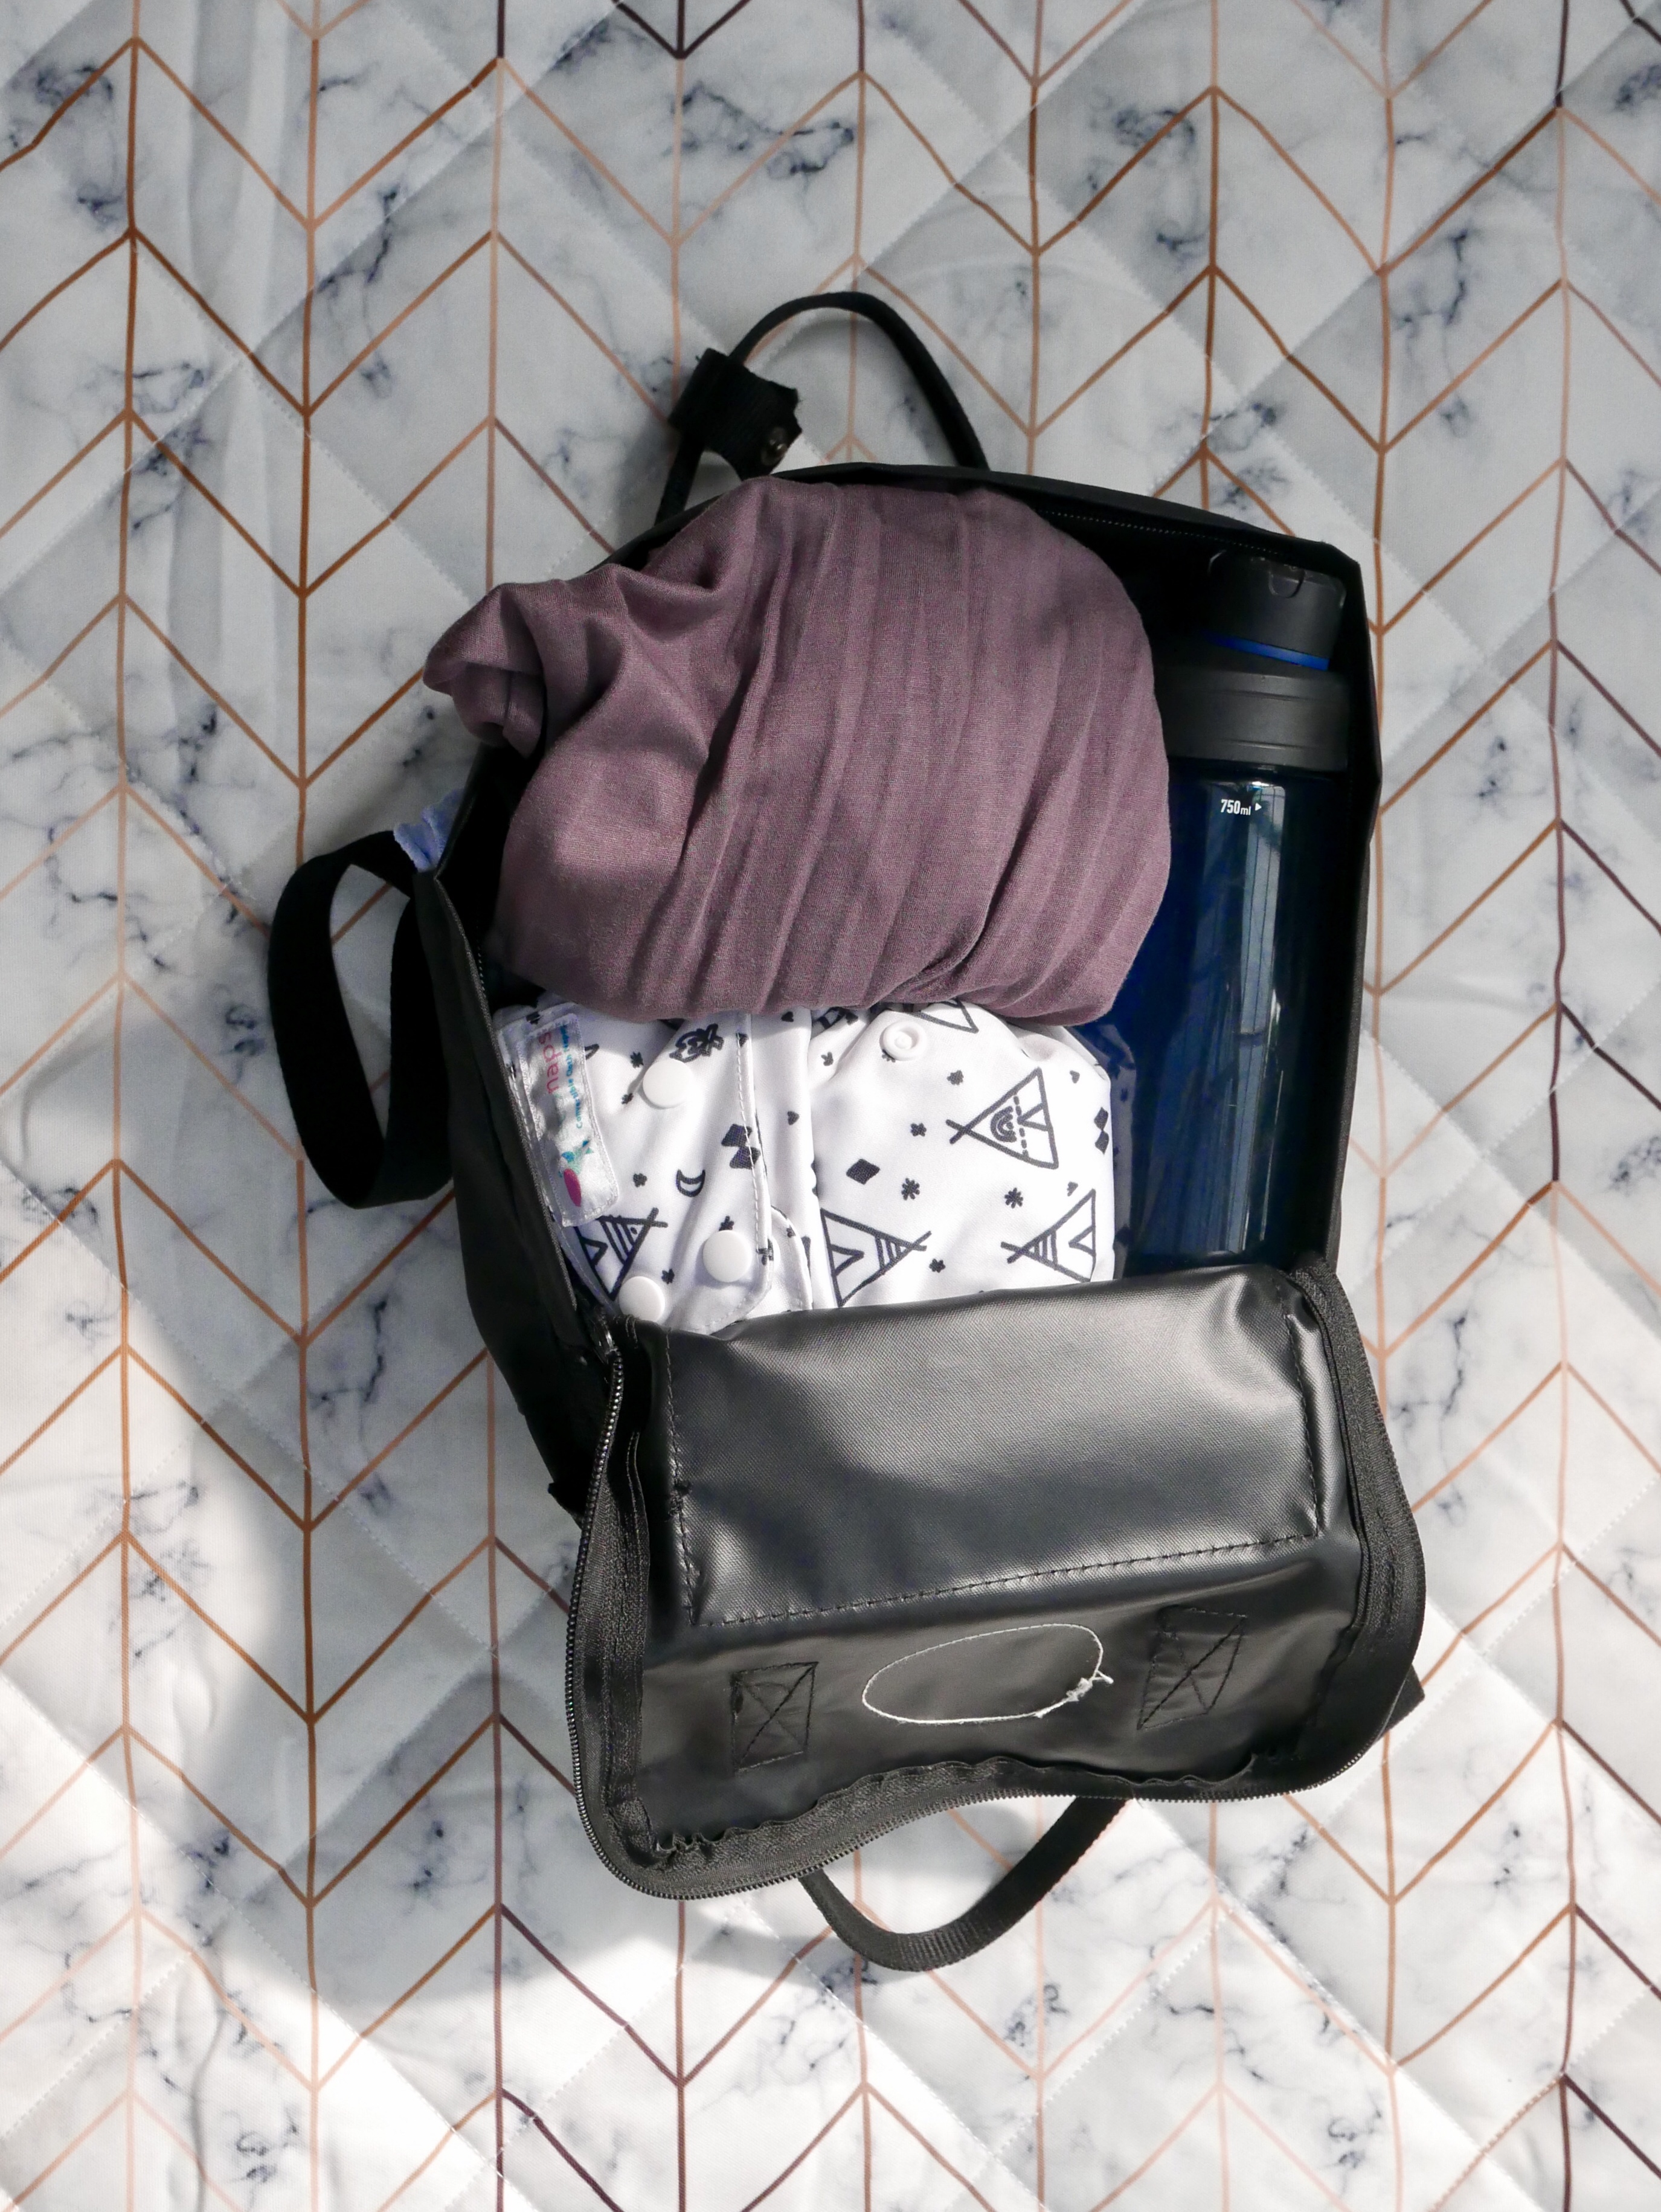 Backpack at full capacity with essentials plus a ring sling